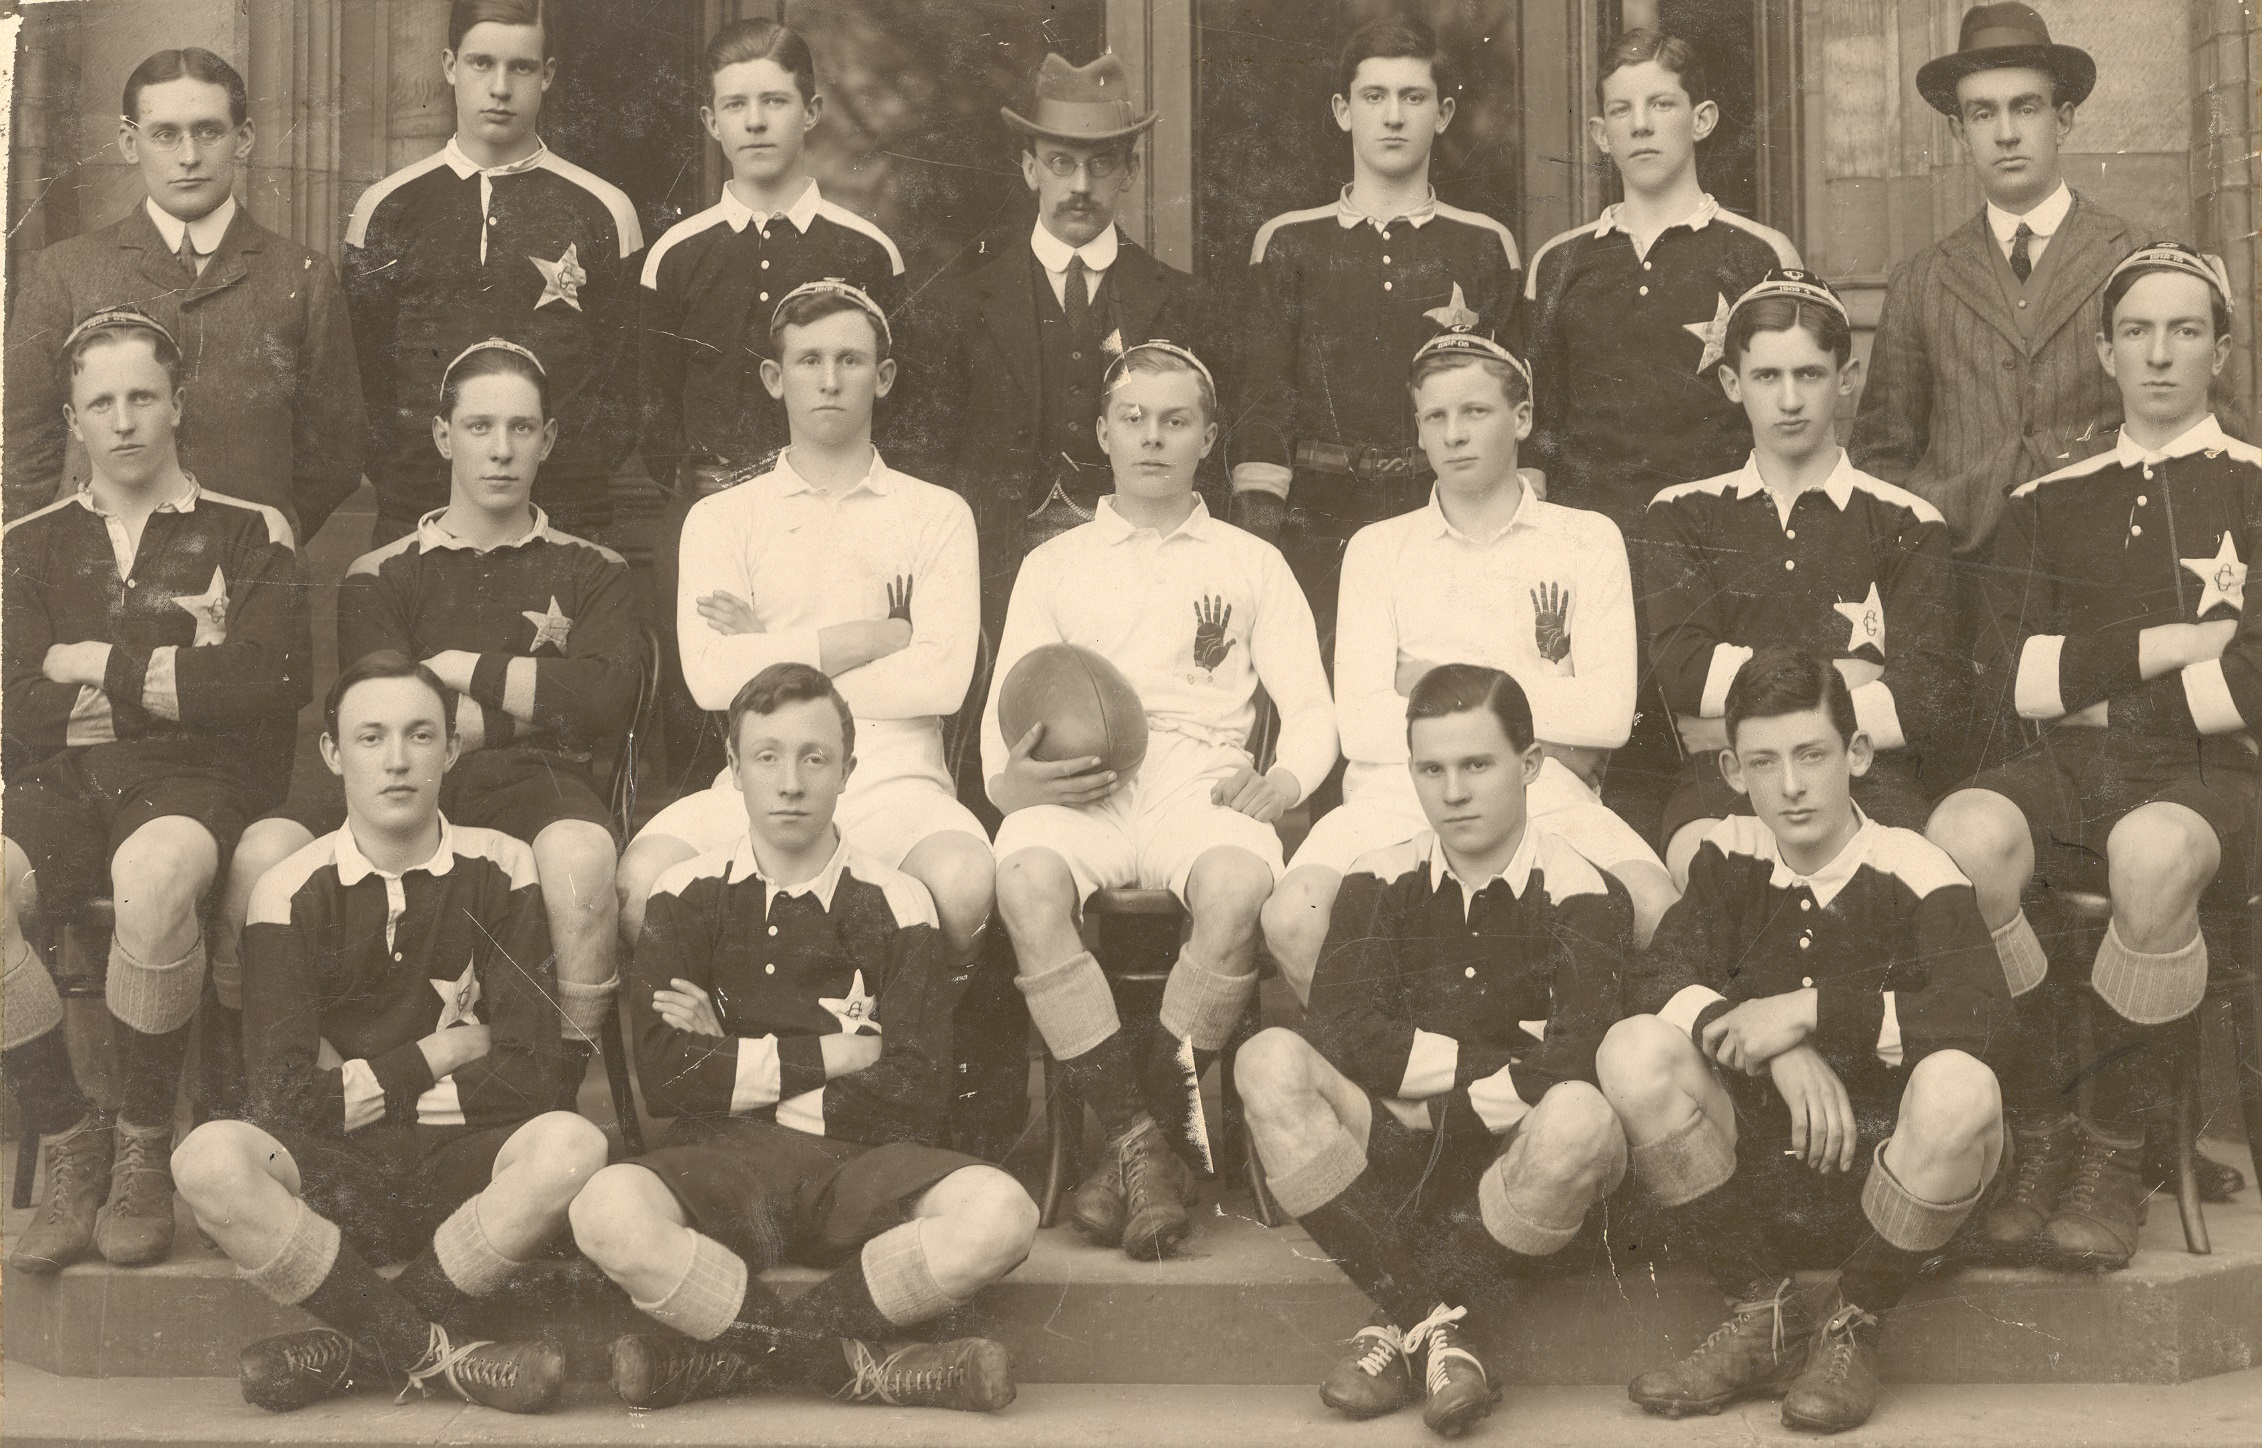 Robert played in the 1914 1st Rugby XV